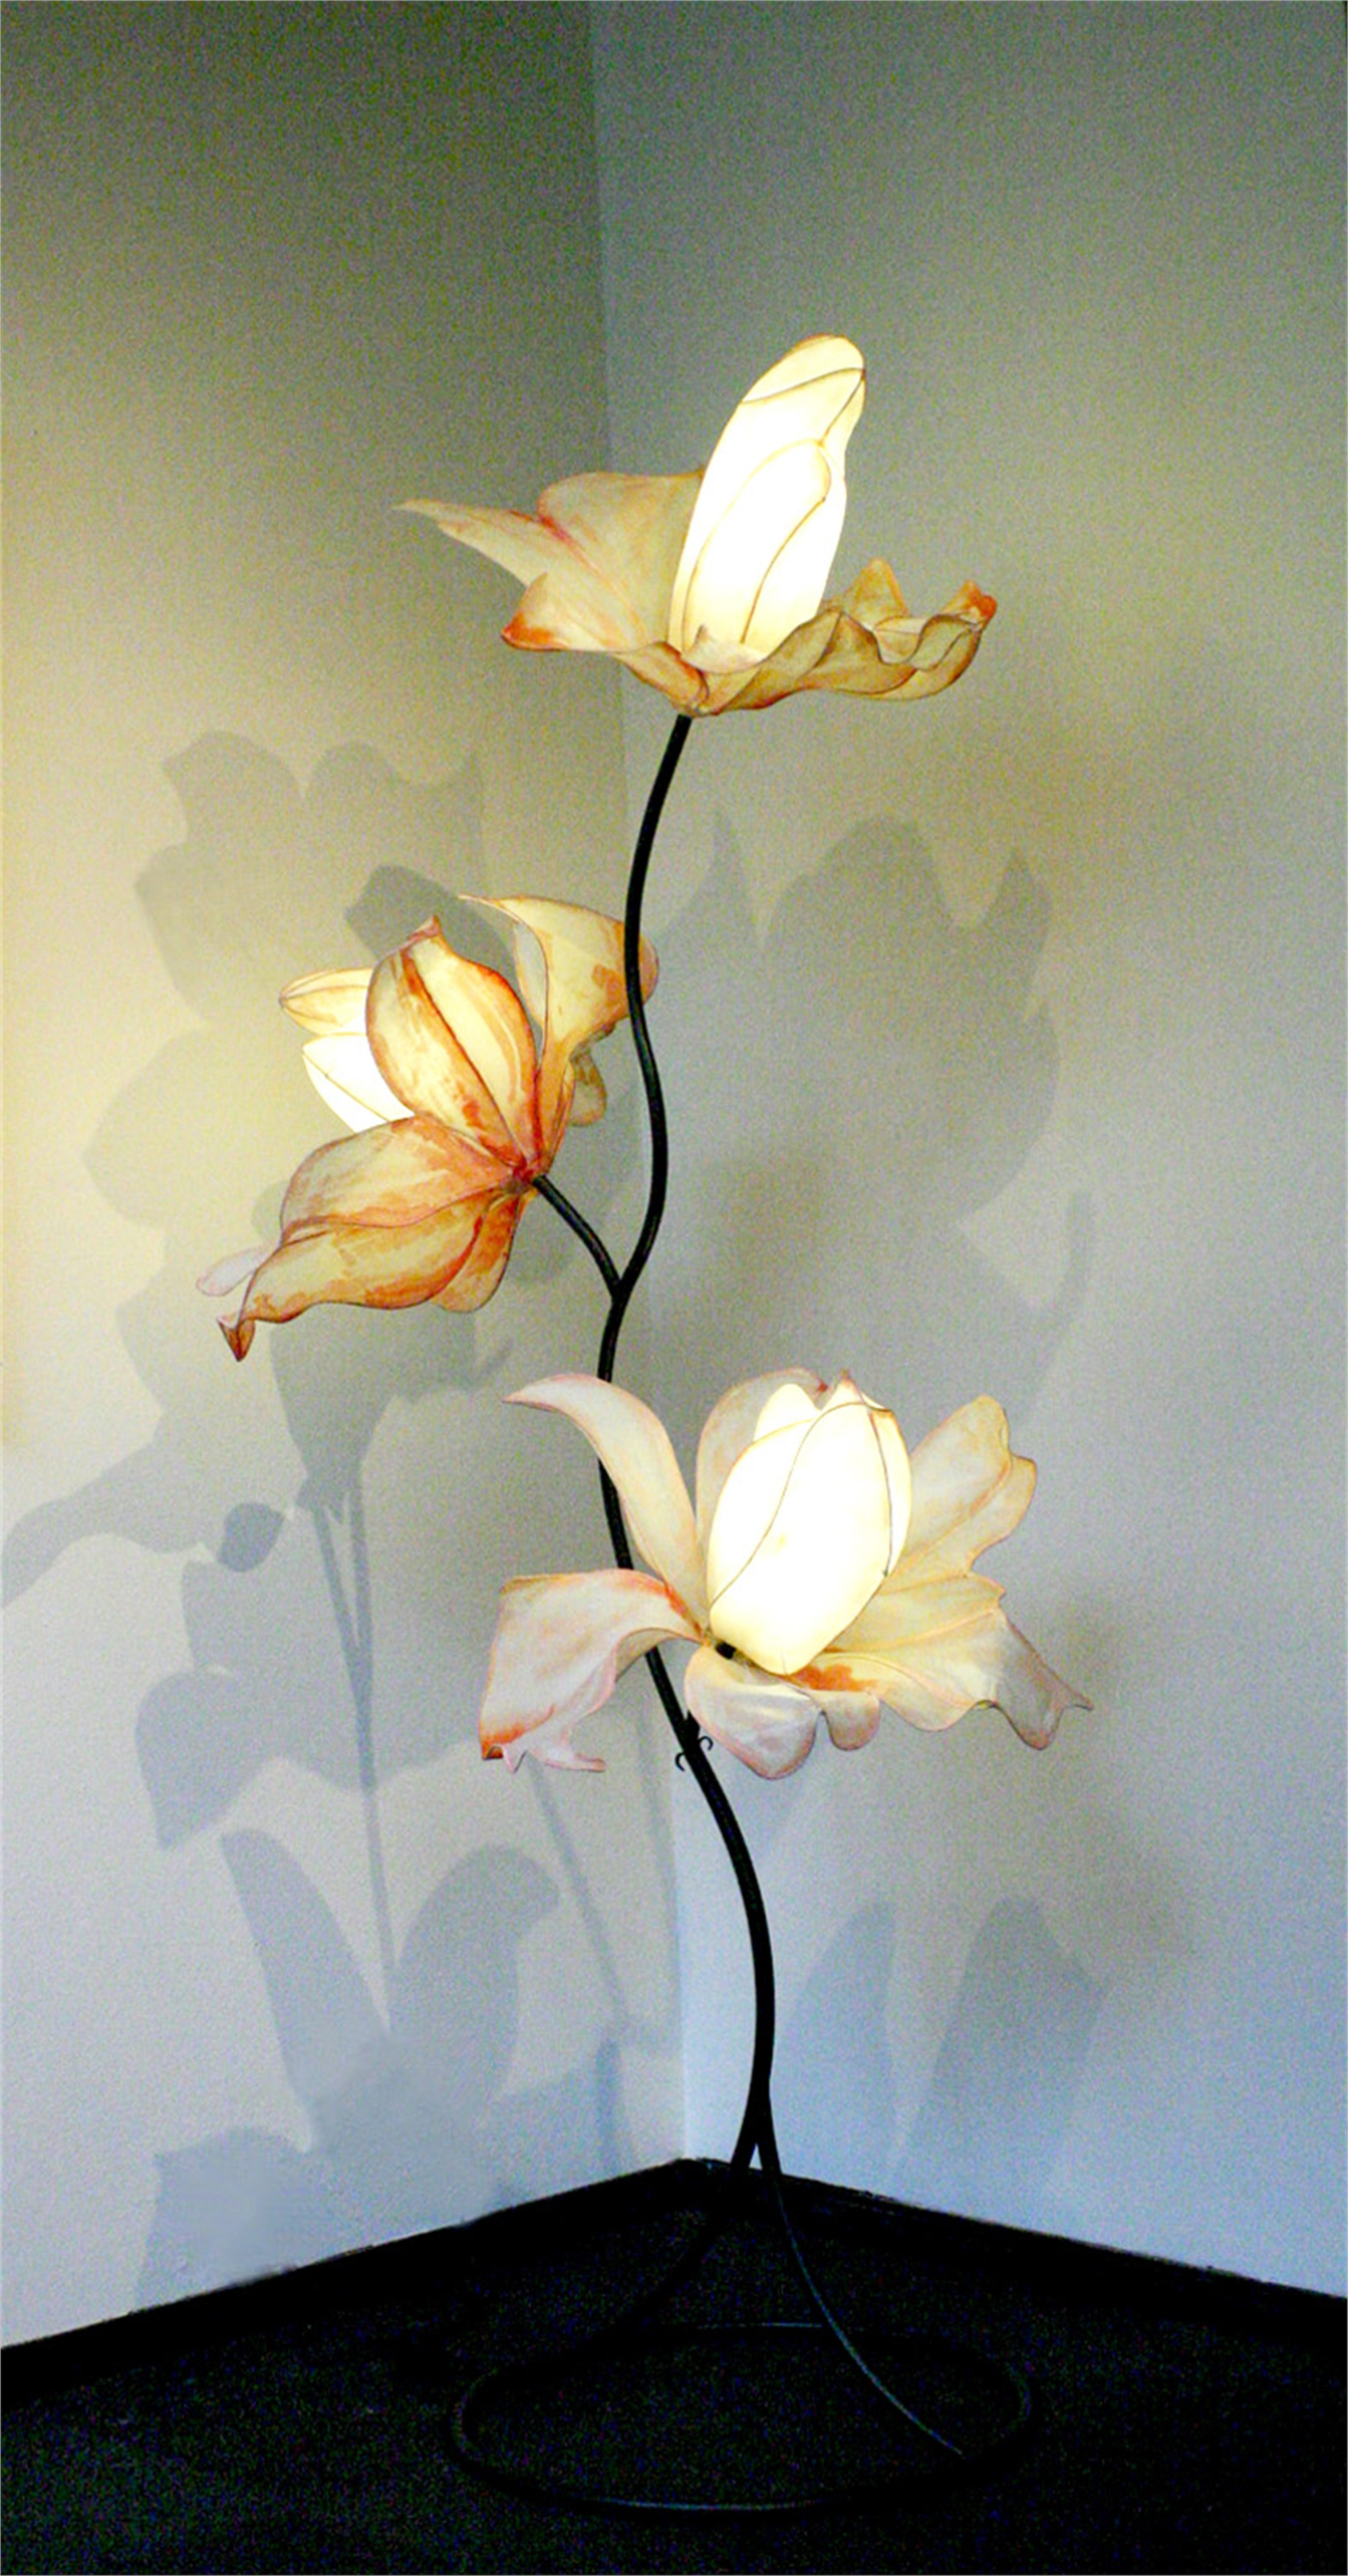 Thumbelina Standing Lamp | HiiH Lights by Commissioned Project